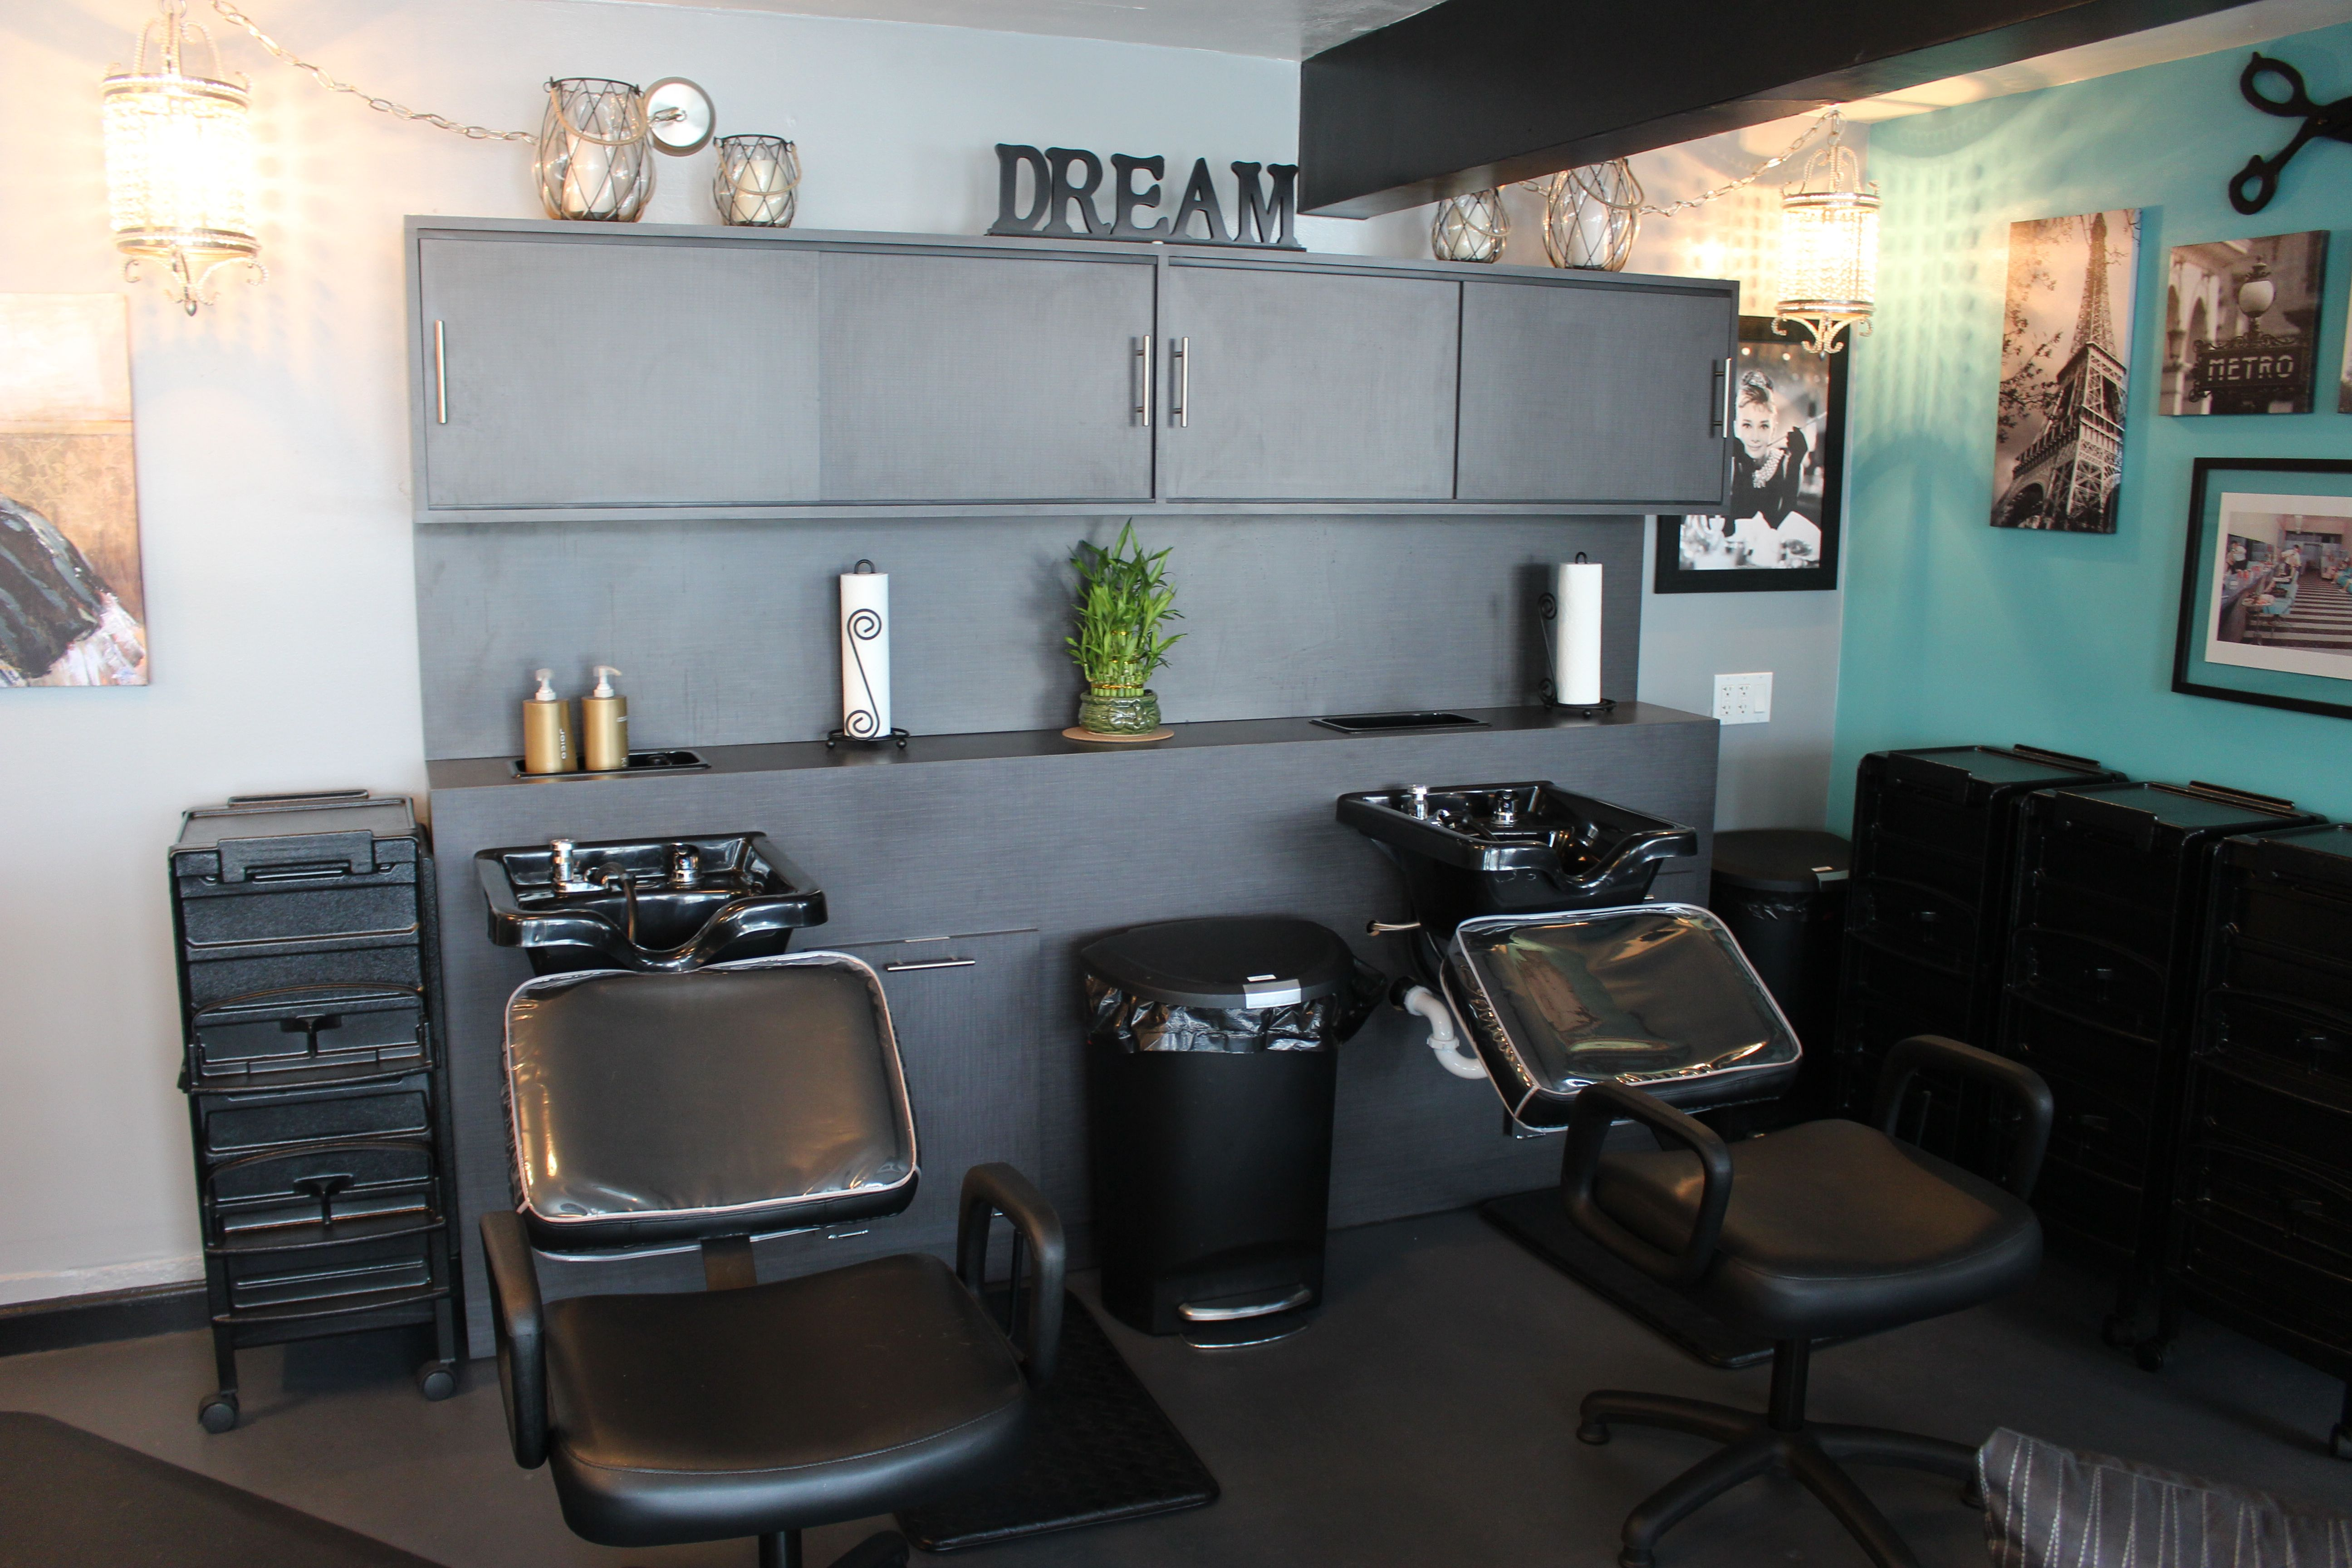 Washing Station at Sublime Designs for Hair & Home in Yucaipa